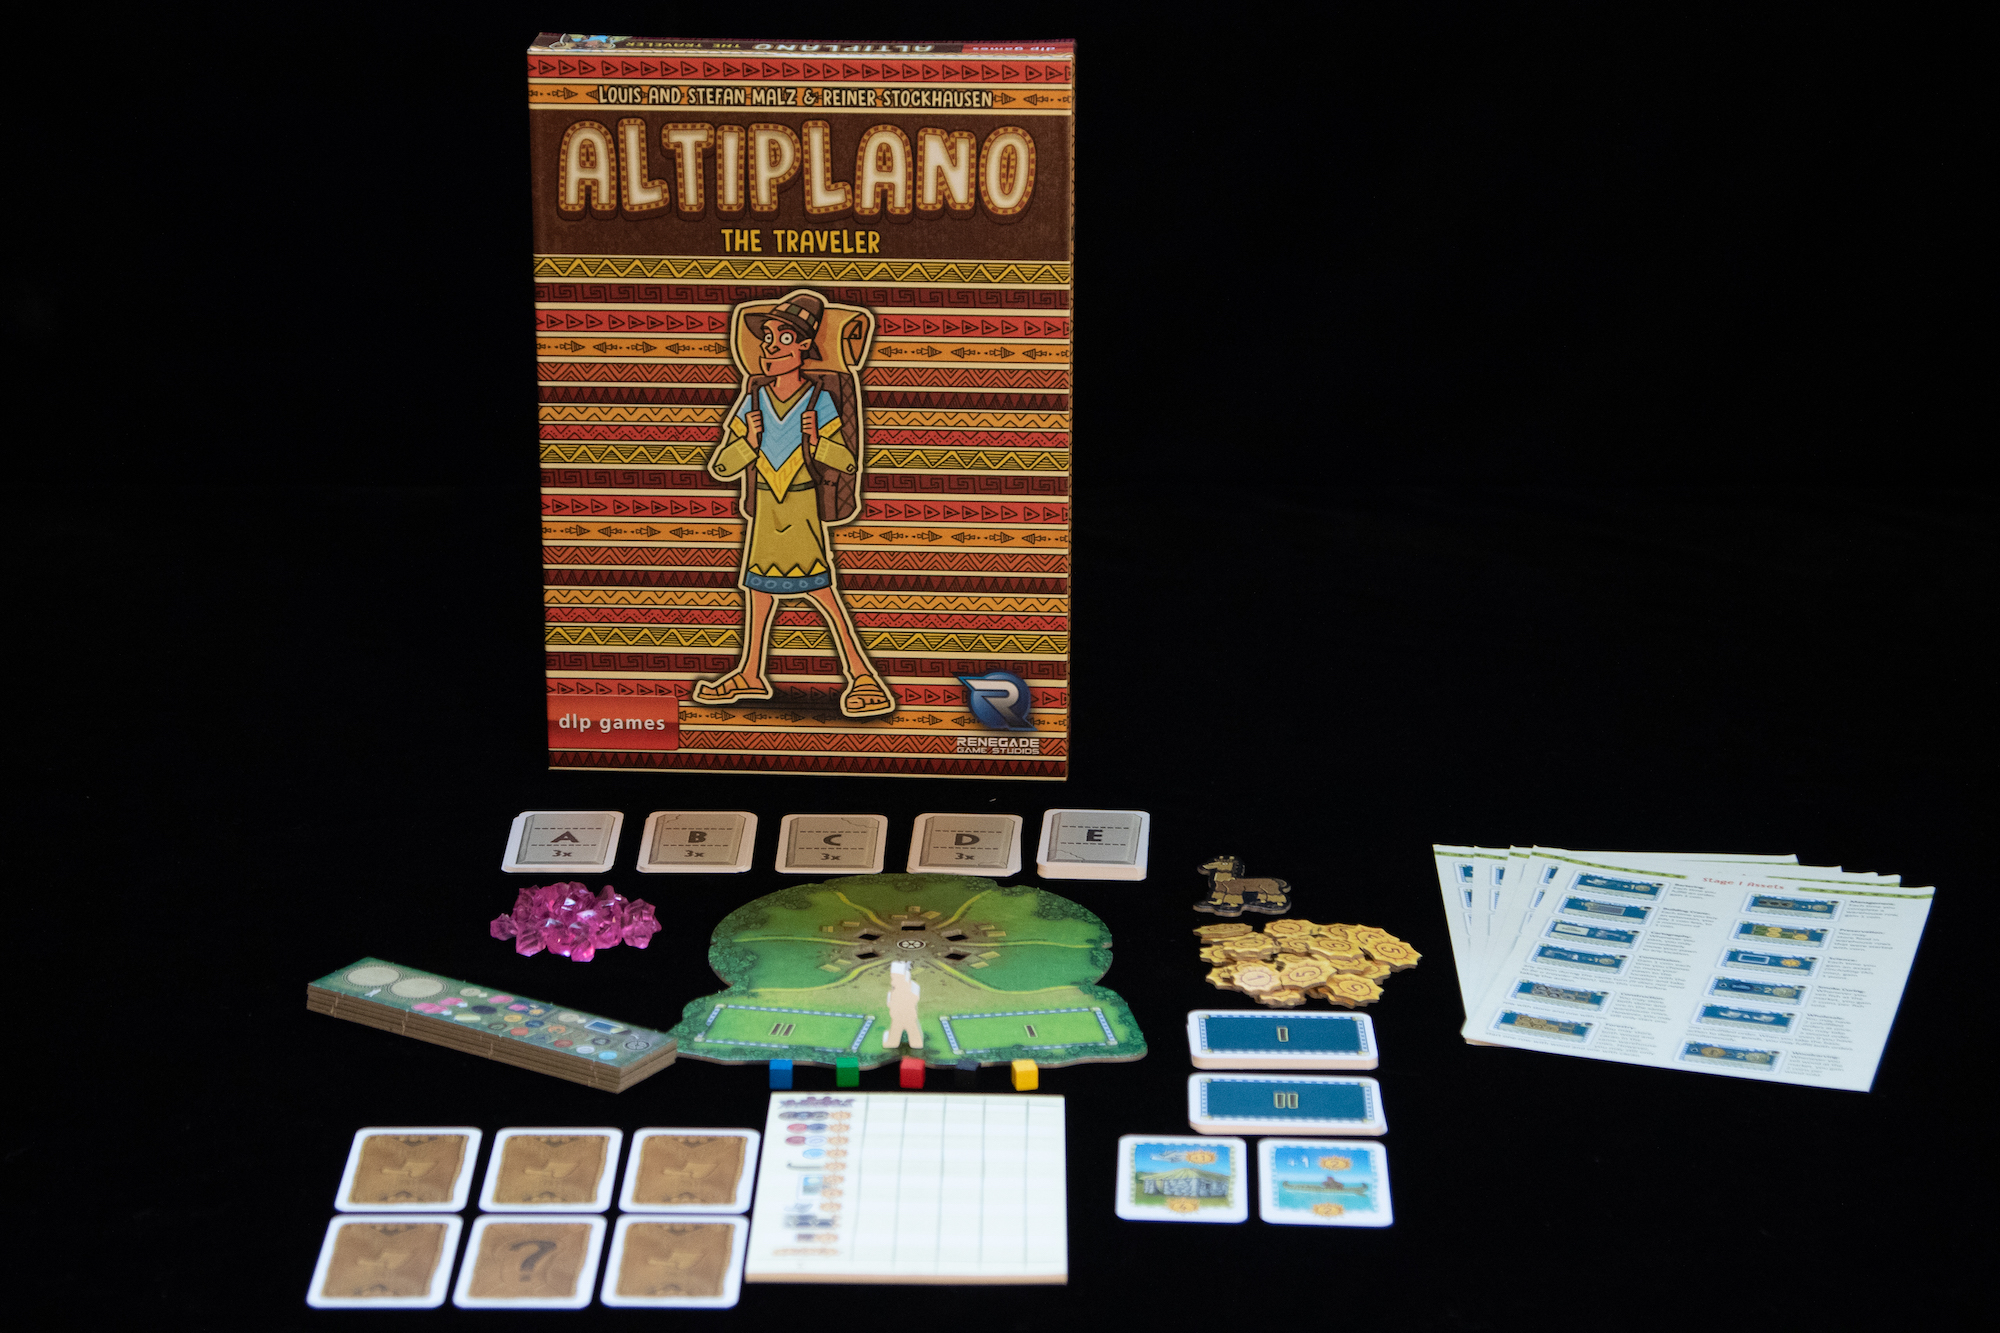 Altiplano_Traveler (1 of 8).jpg